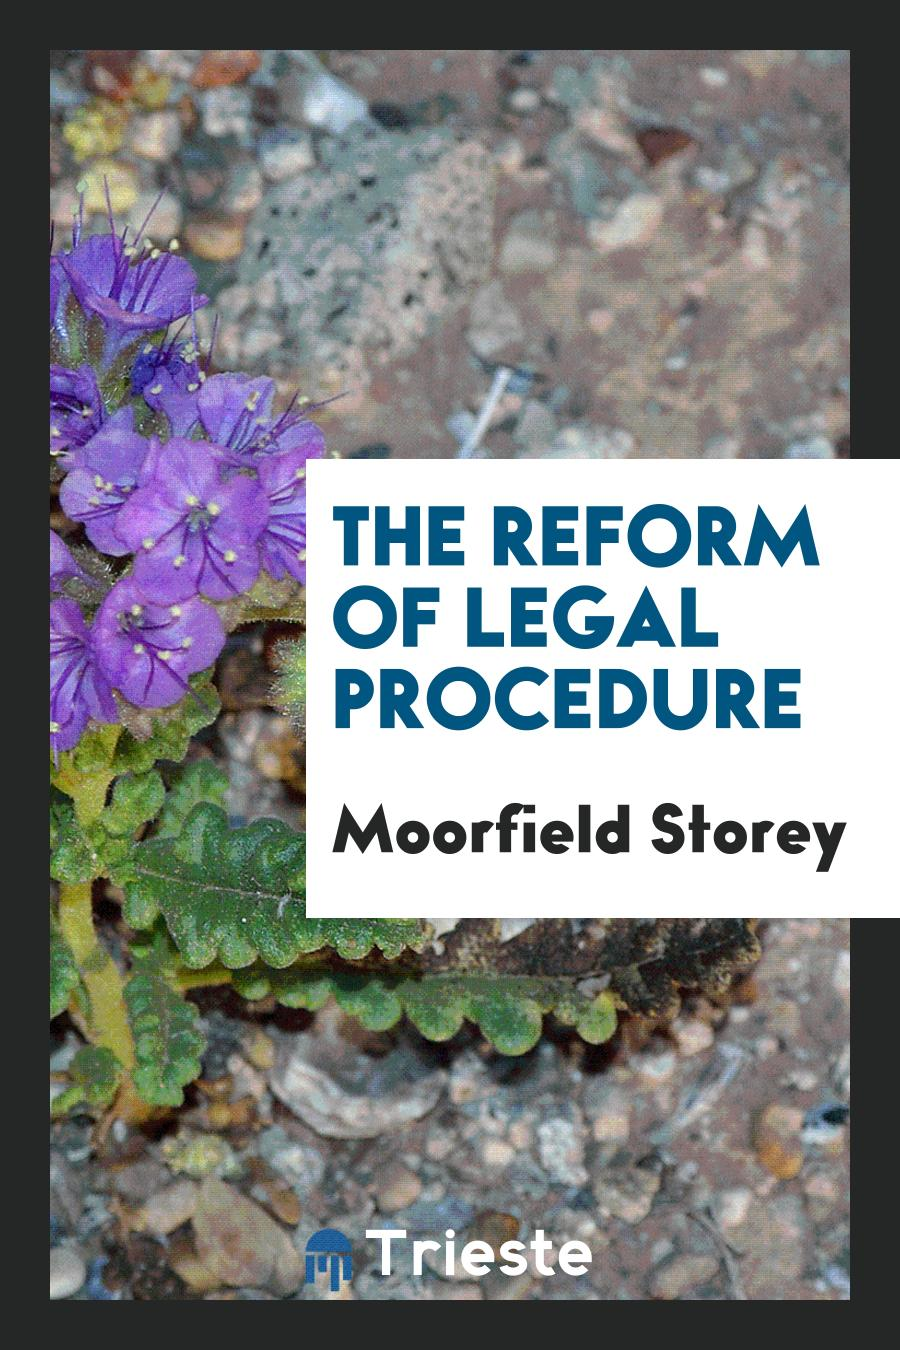 The Reform of Legal Procedure